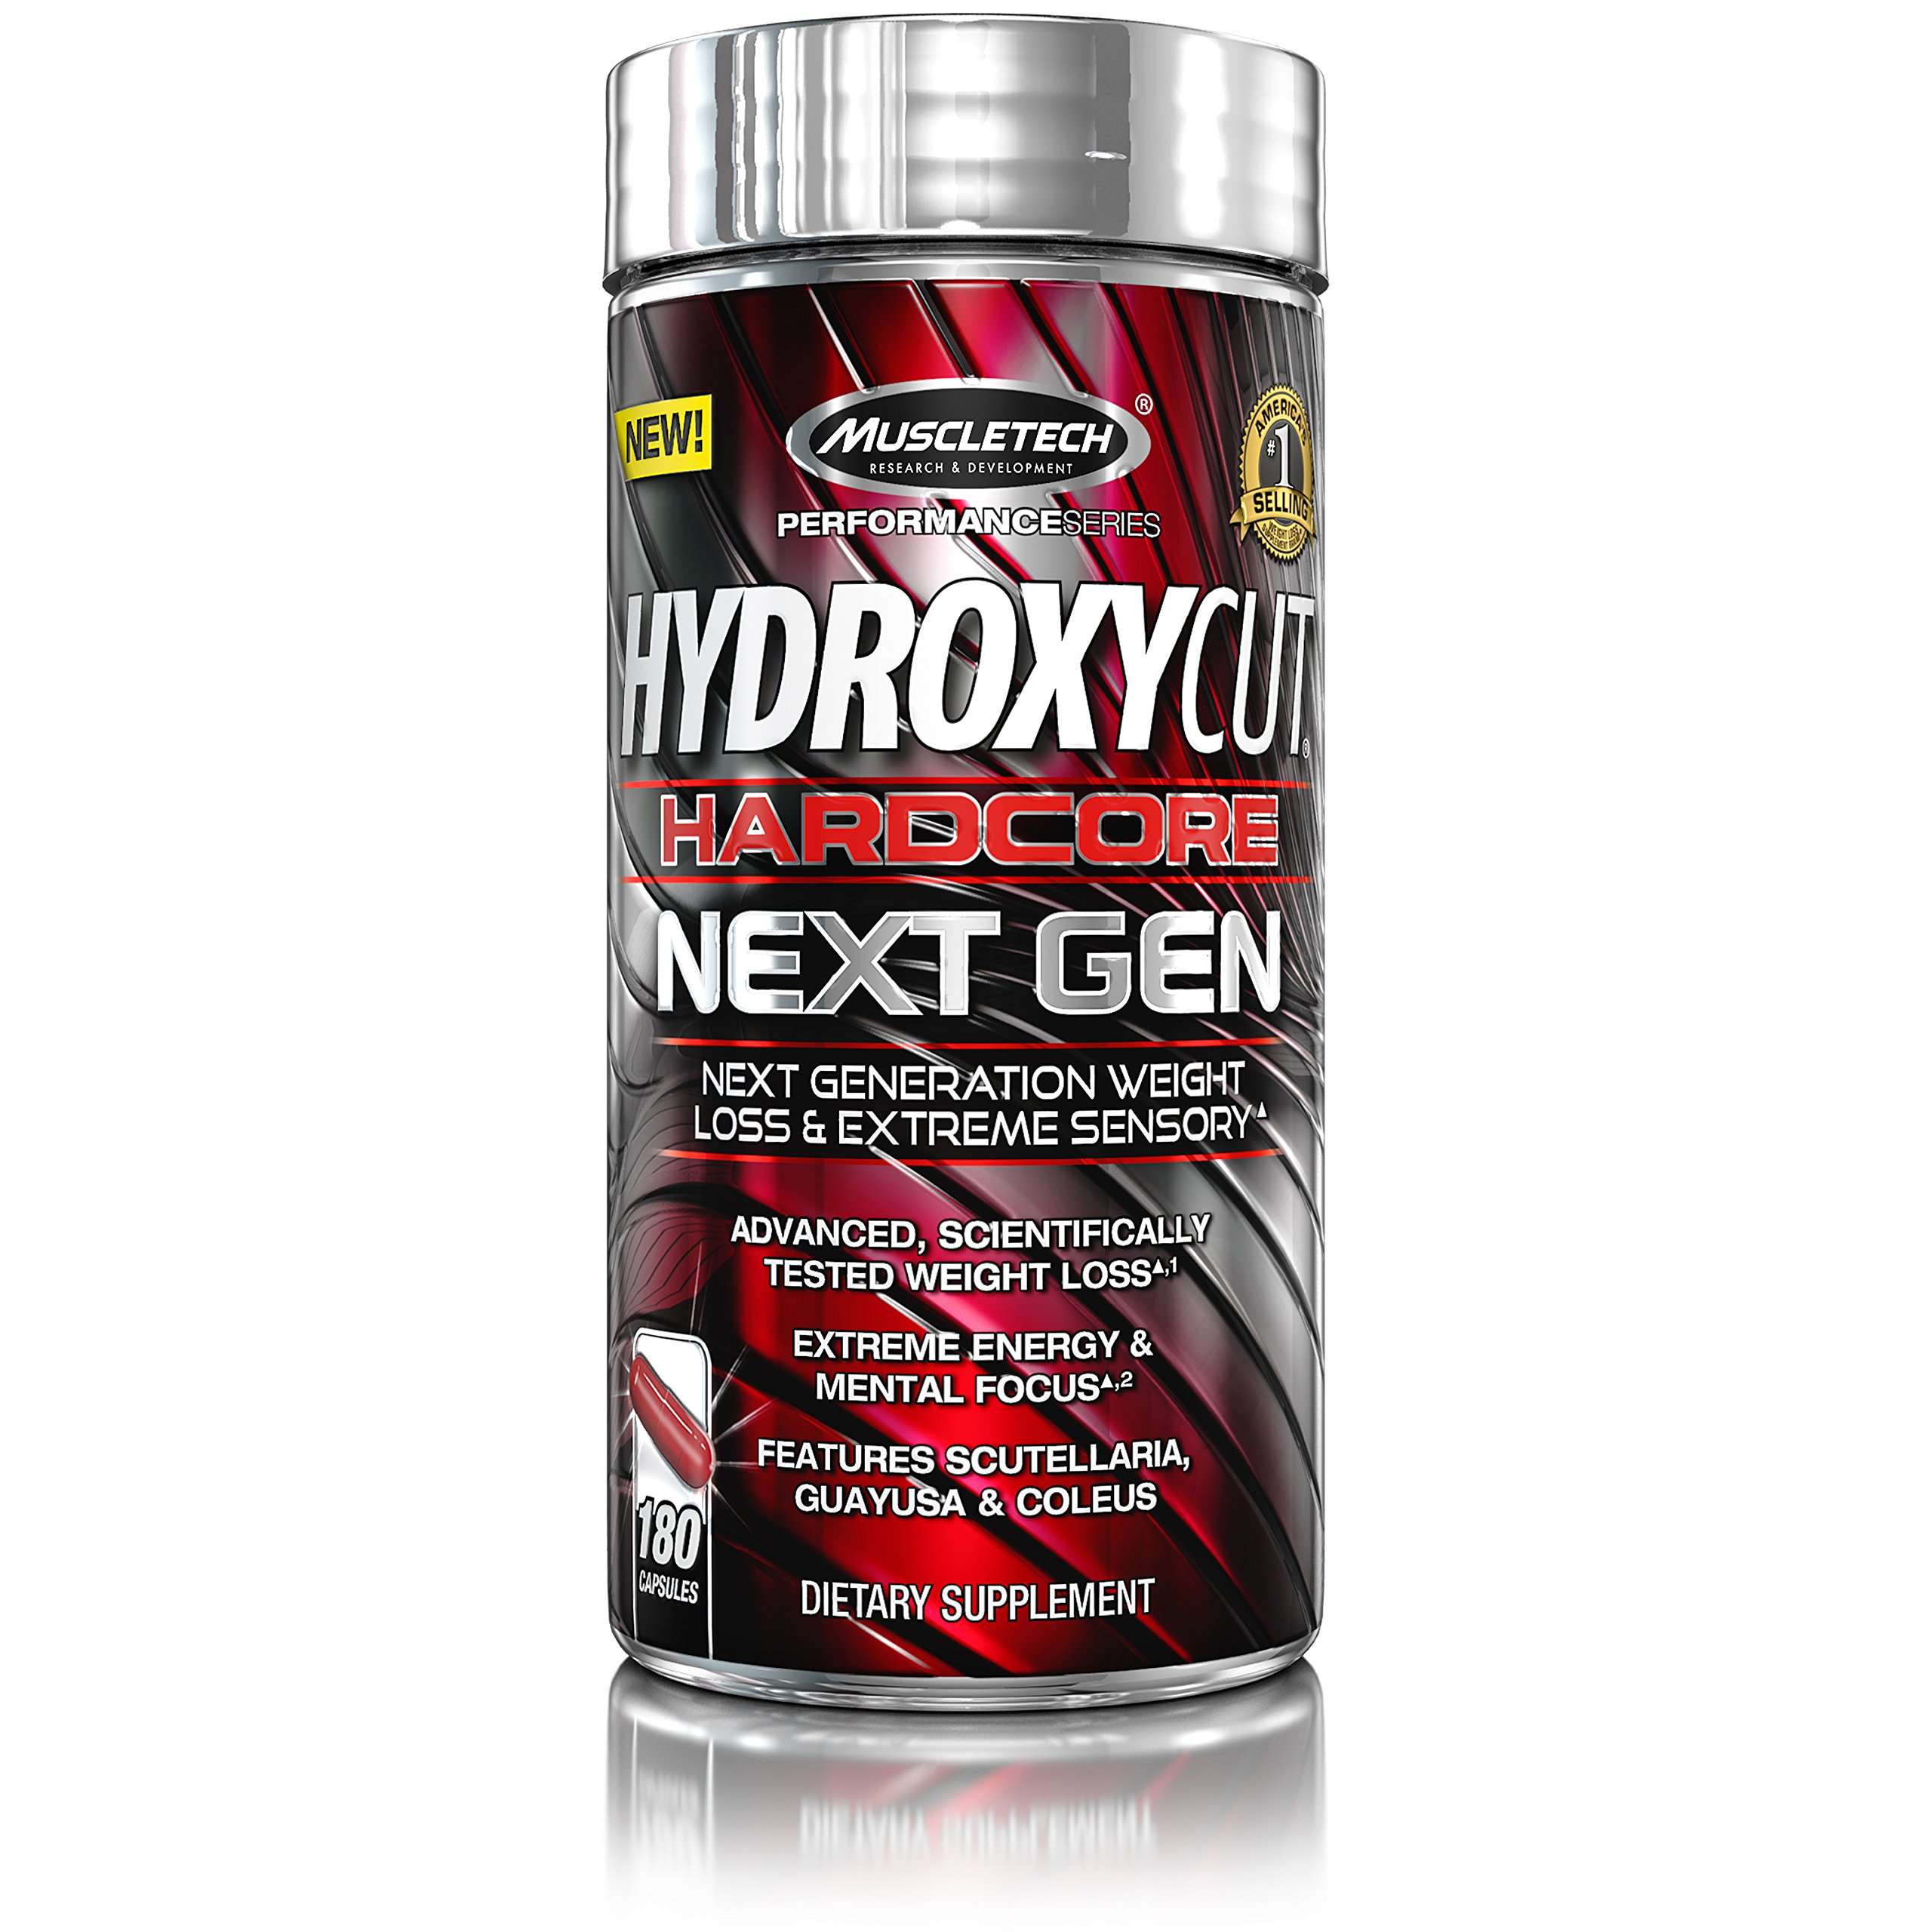 Hydroxycut Hardcore Next Gen, Scientifically Tested Weight Loss and Energy, Weight Loss Supplement, 180 Capsules by Hydroxycut